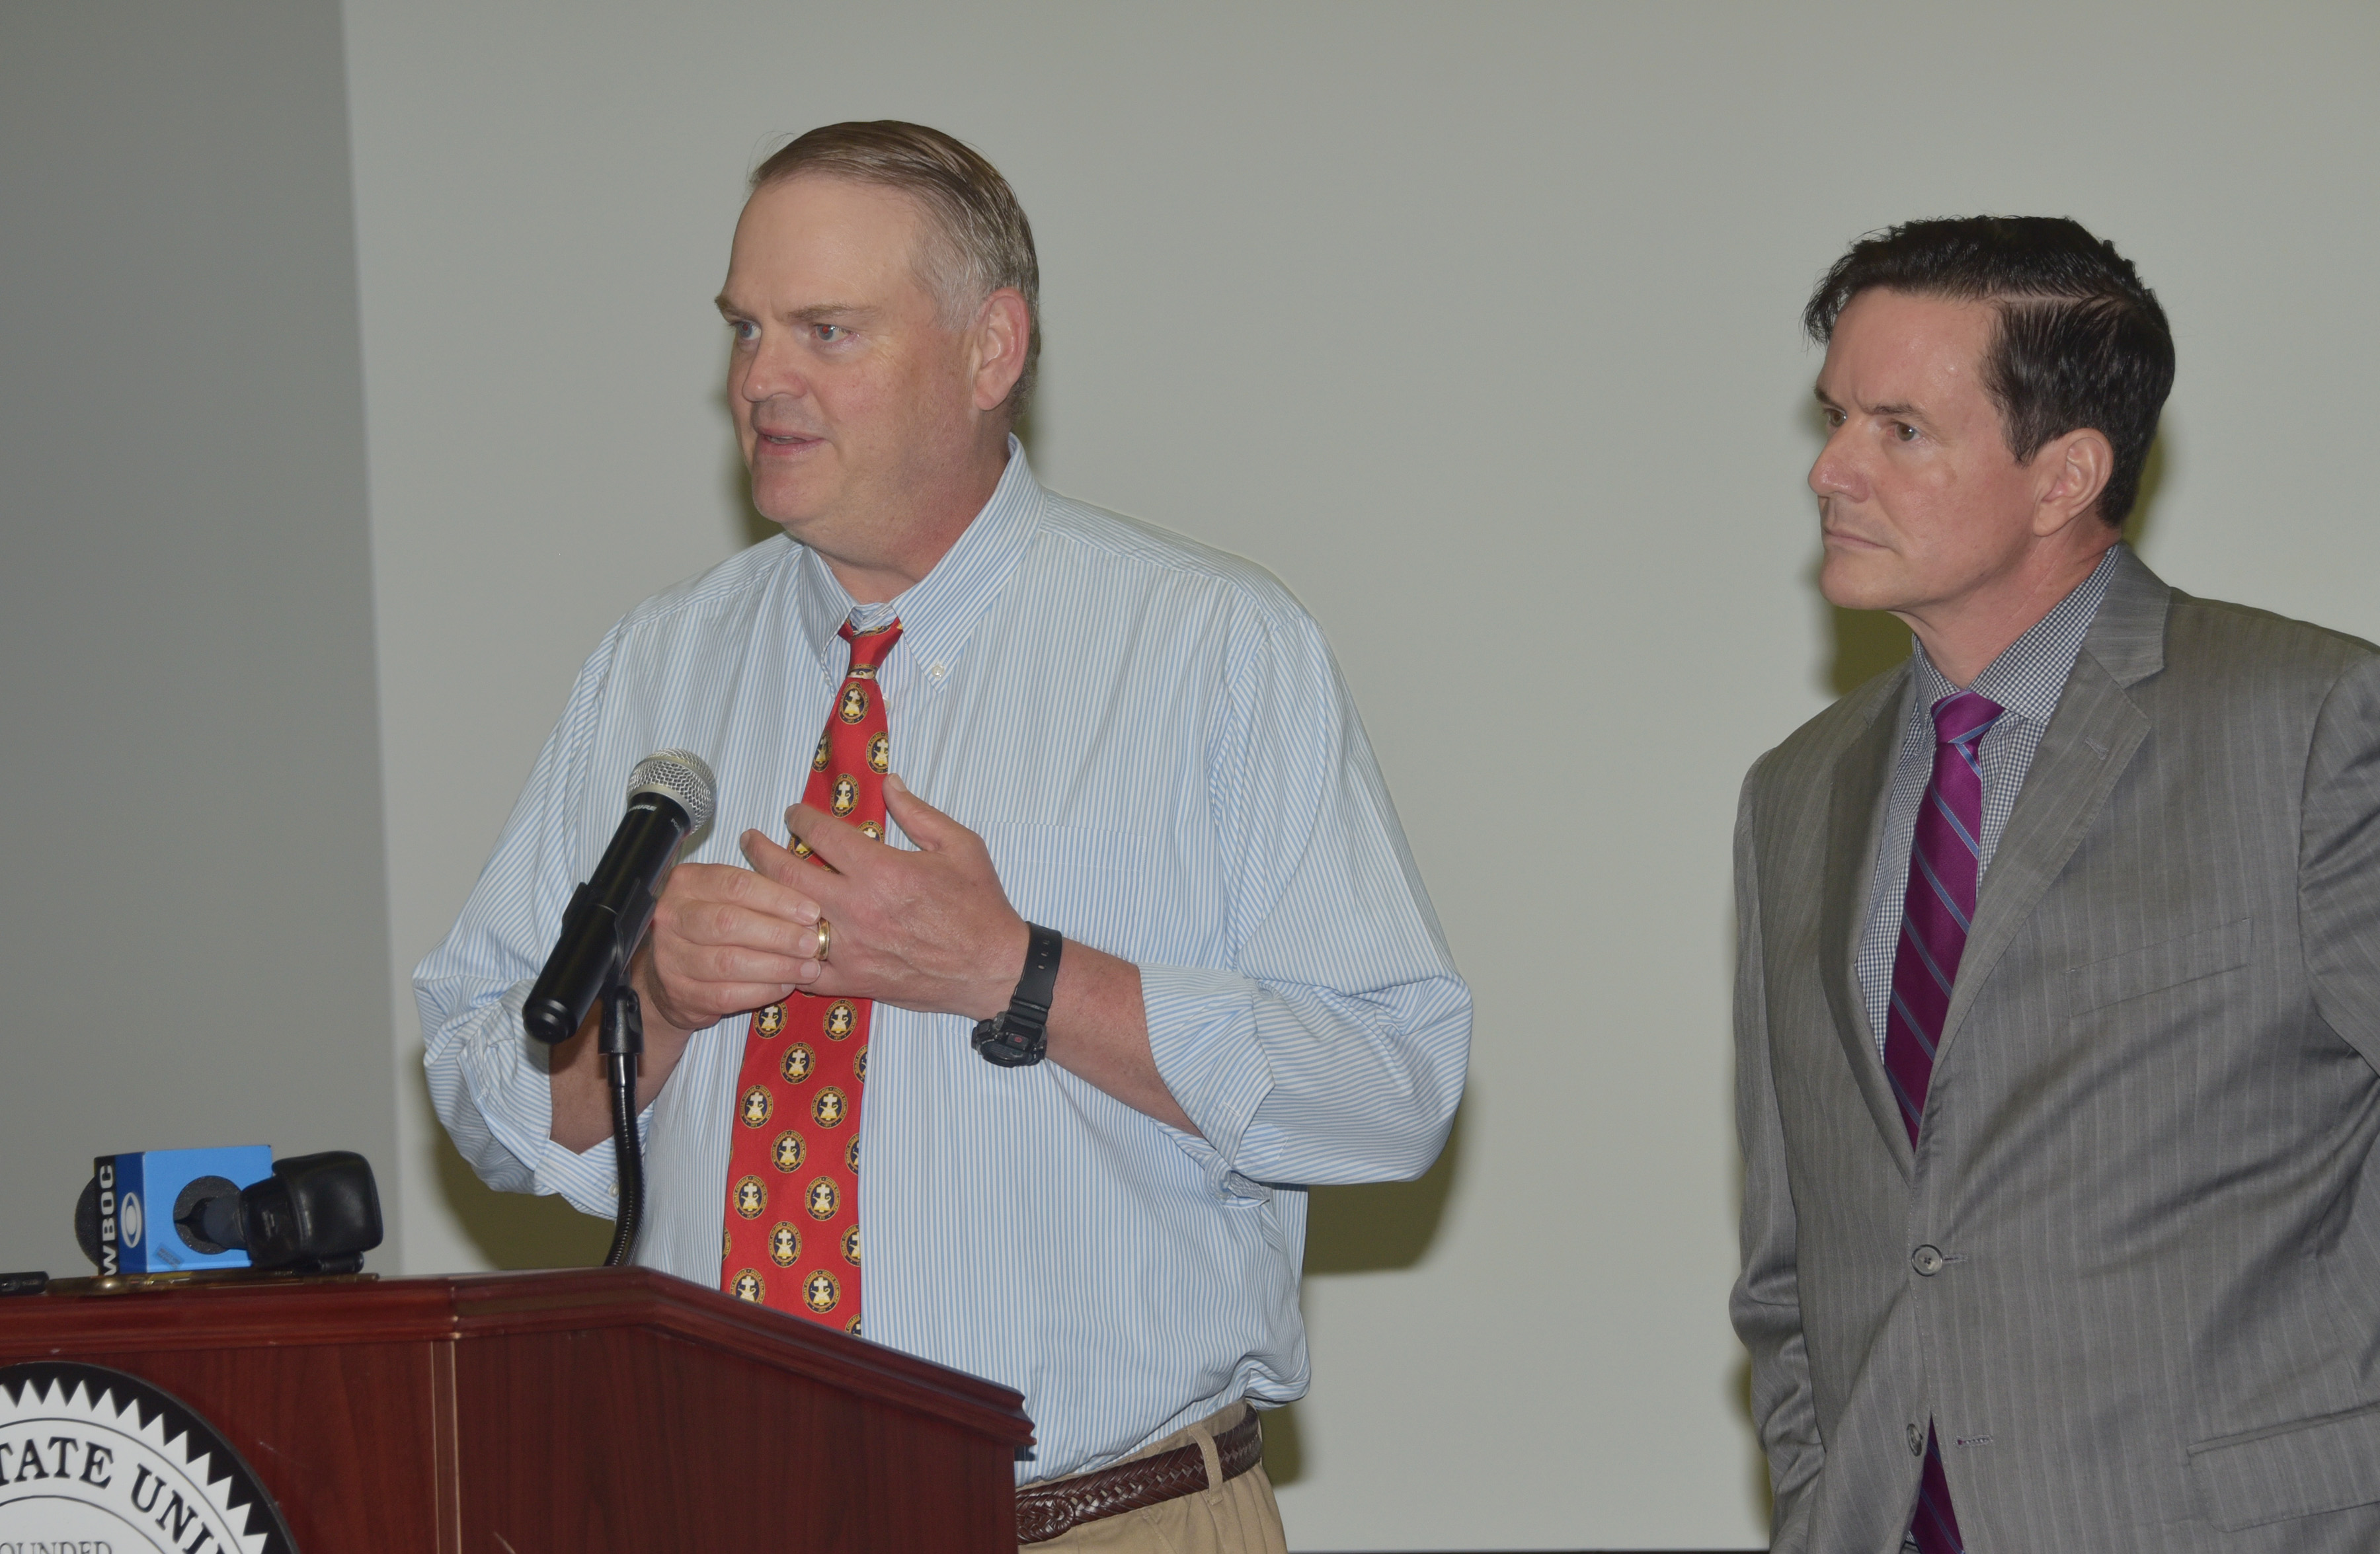 State Sens. Colin Bonini and Trey Paradee shared their support for the acquisition at the press conference.